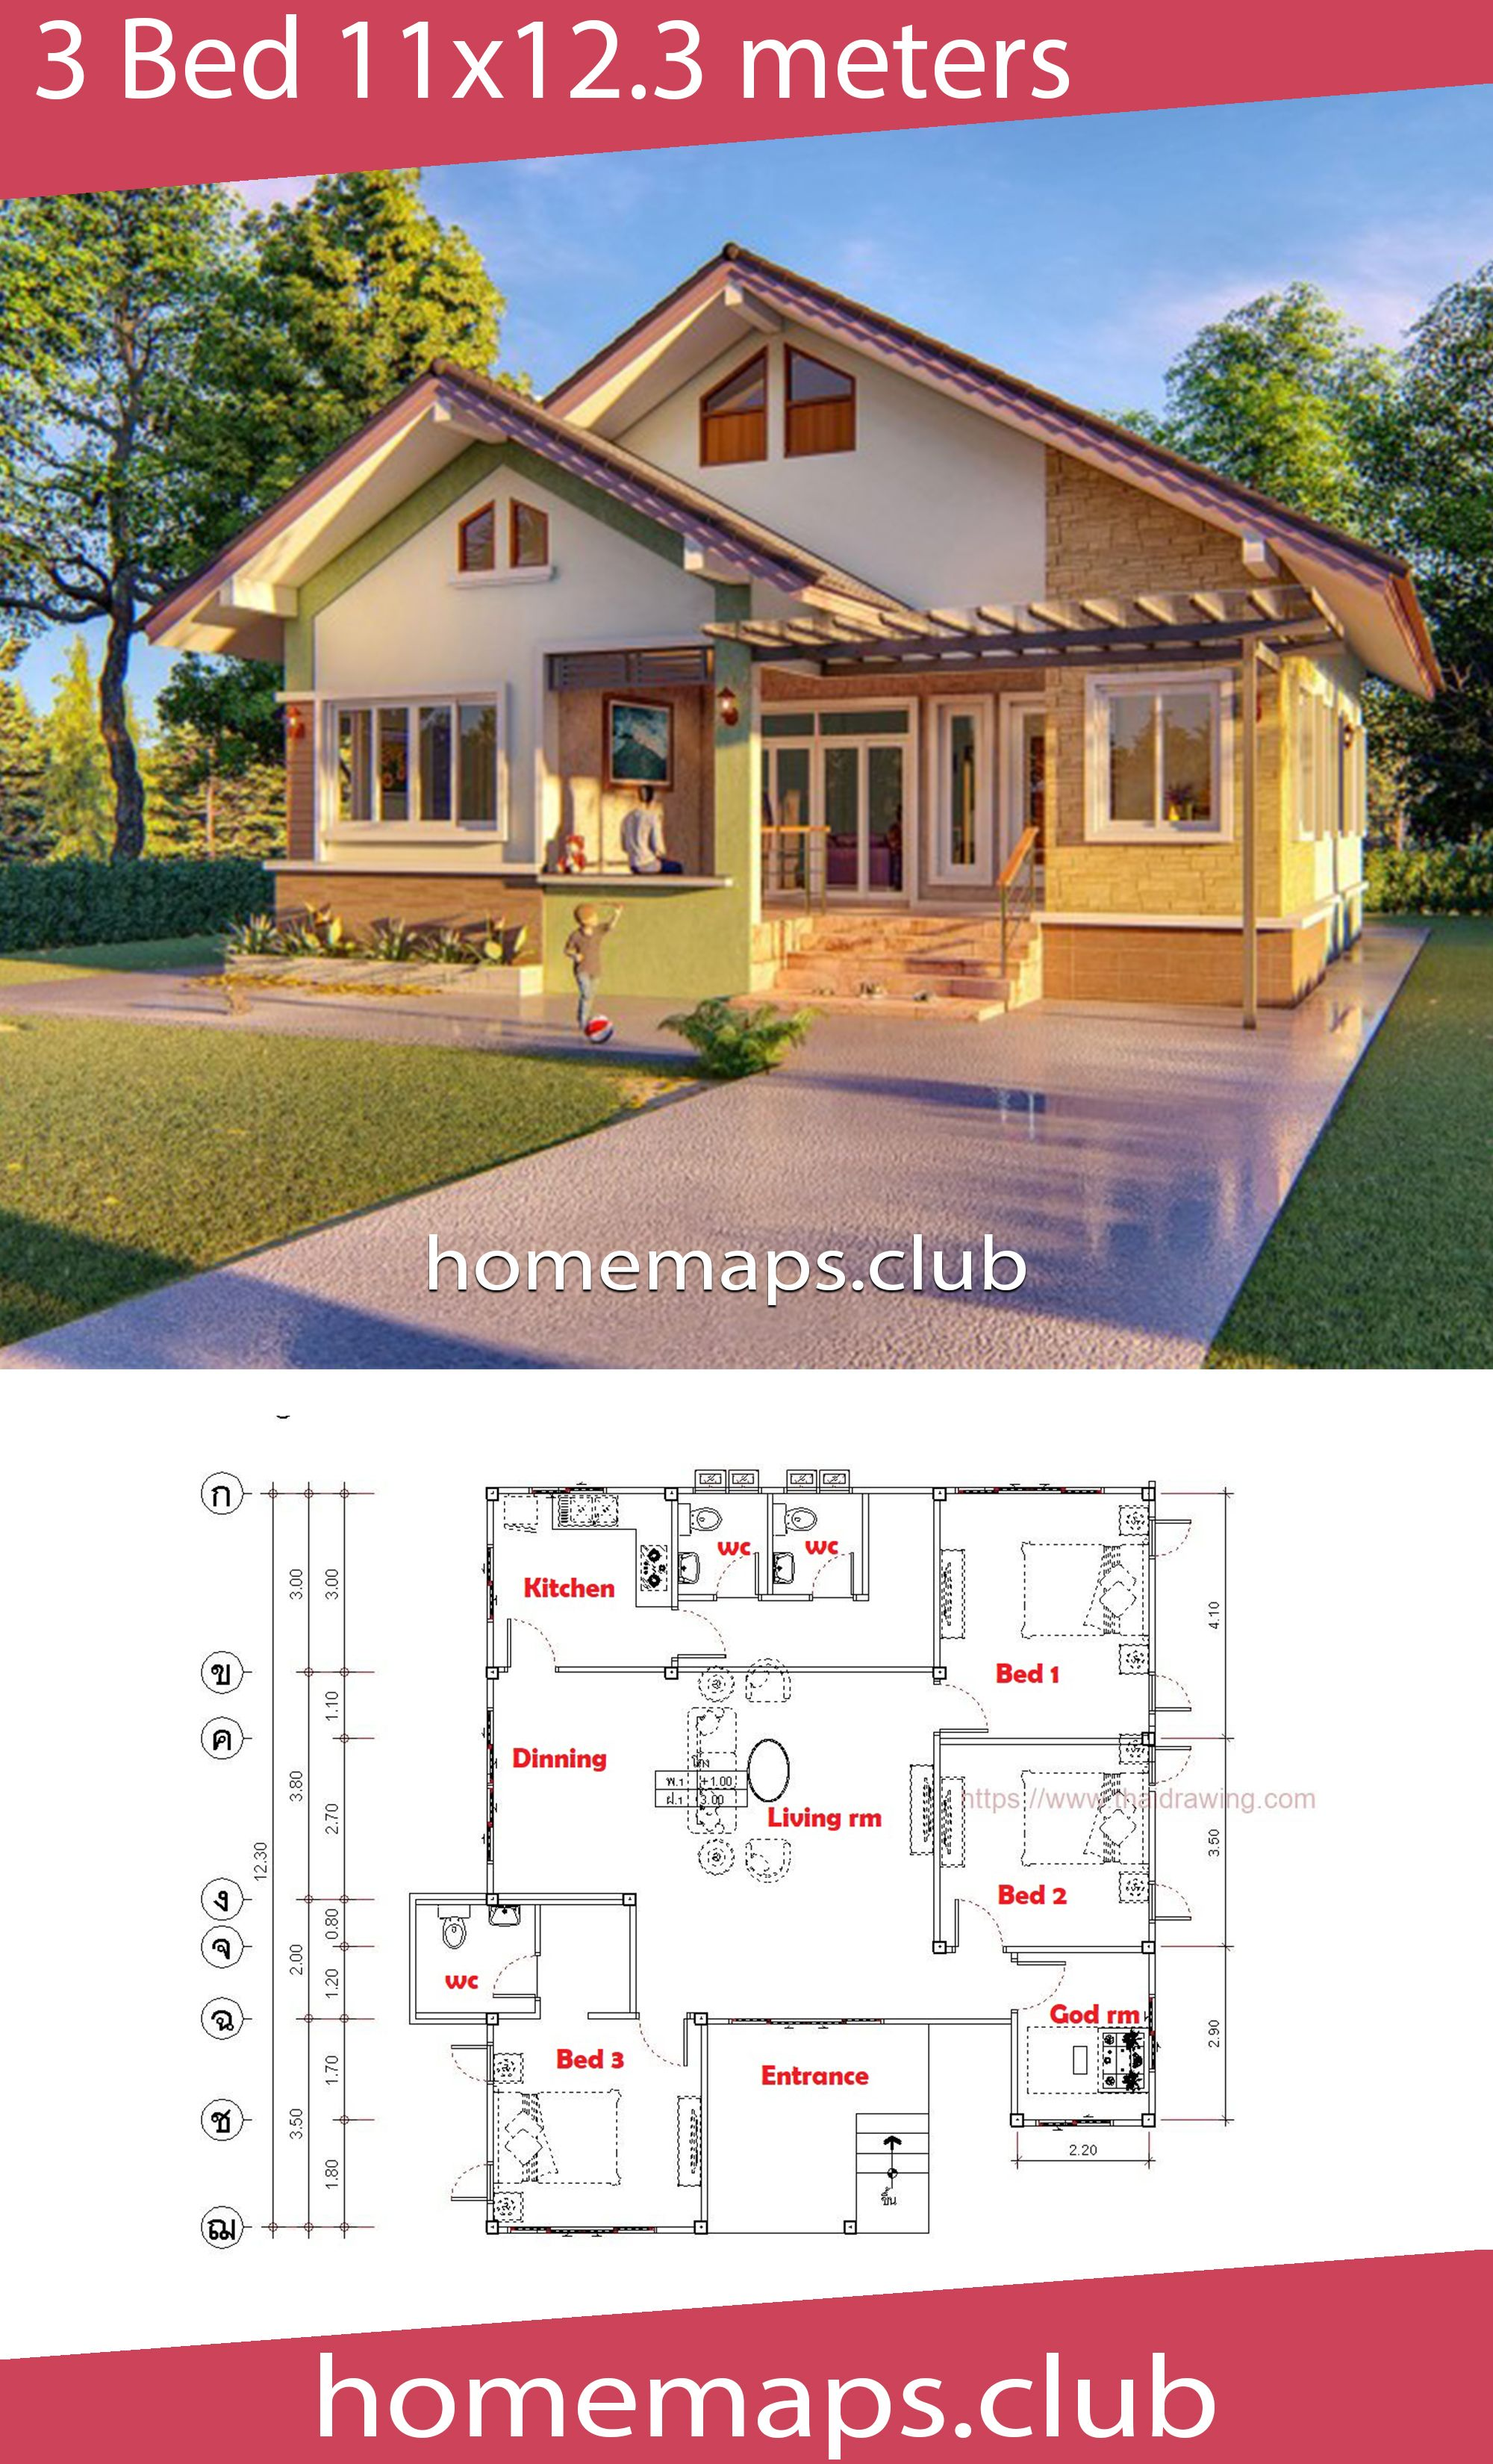 House Design 11x12 3 With 3 Bedrooms Home Maps House Design House House Map